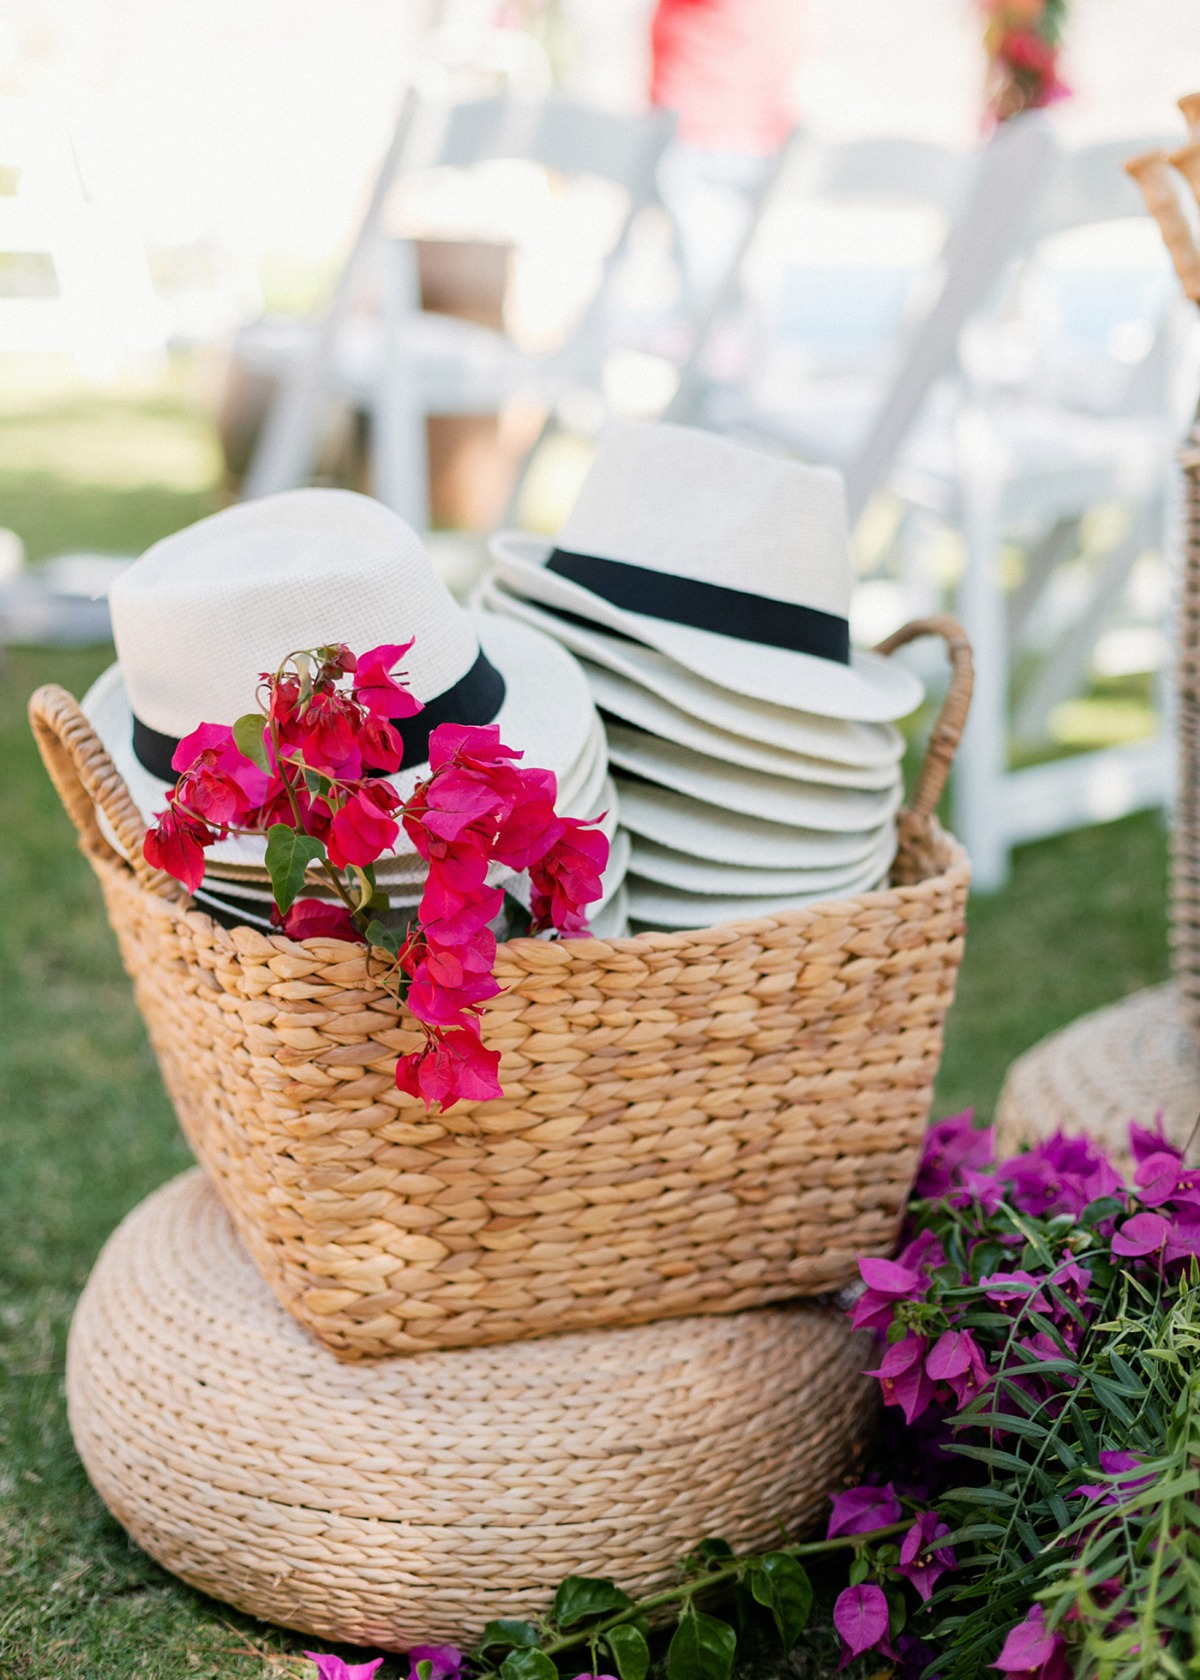 wooden fans, panama hats and parasols to cool off during the ceremony